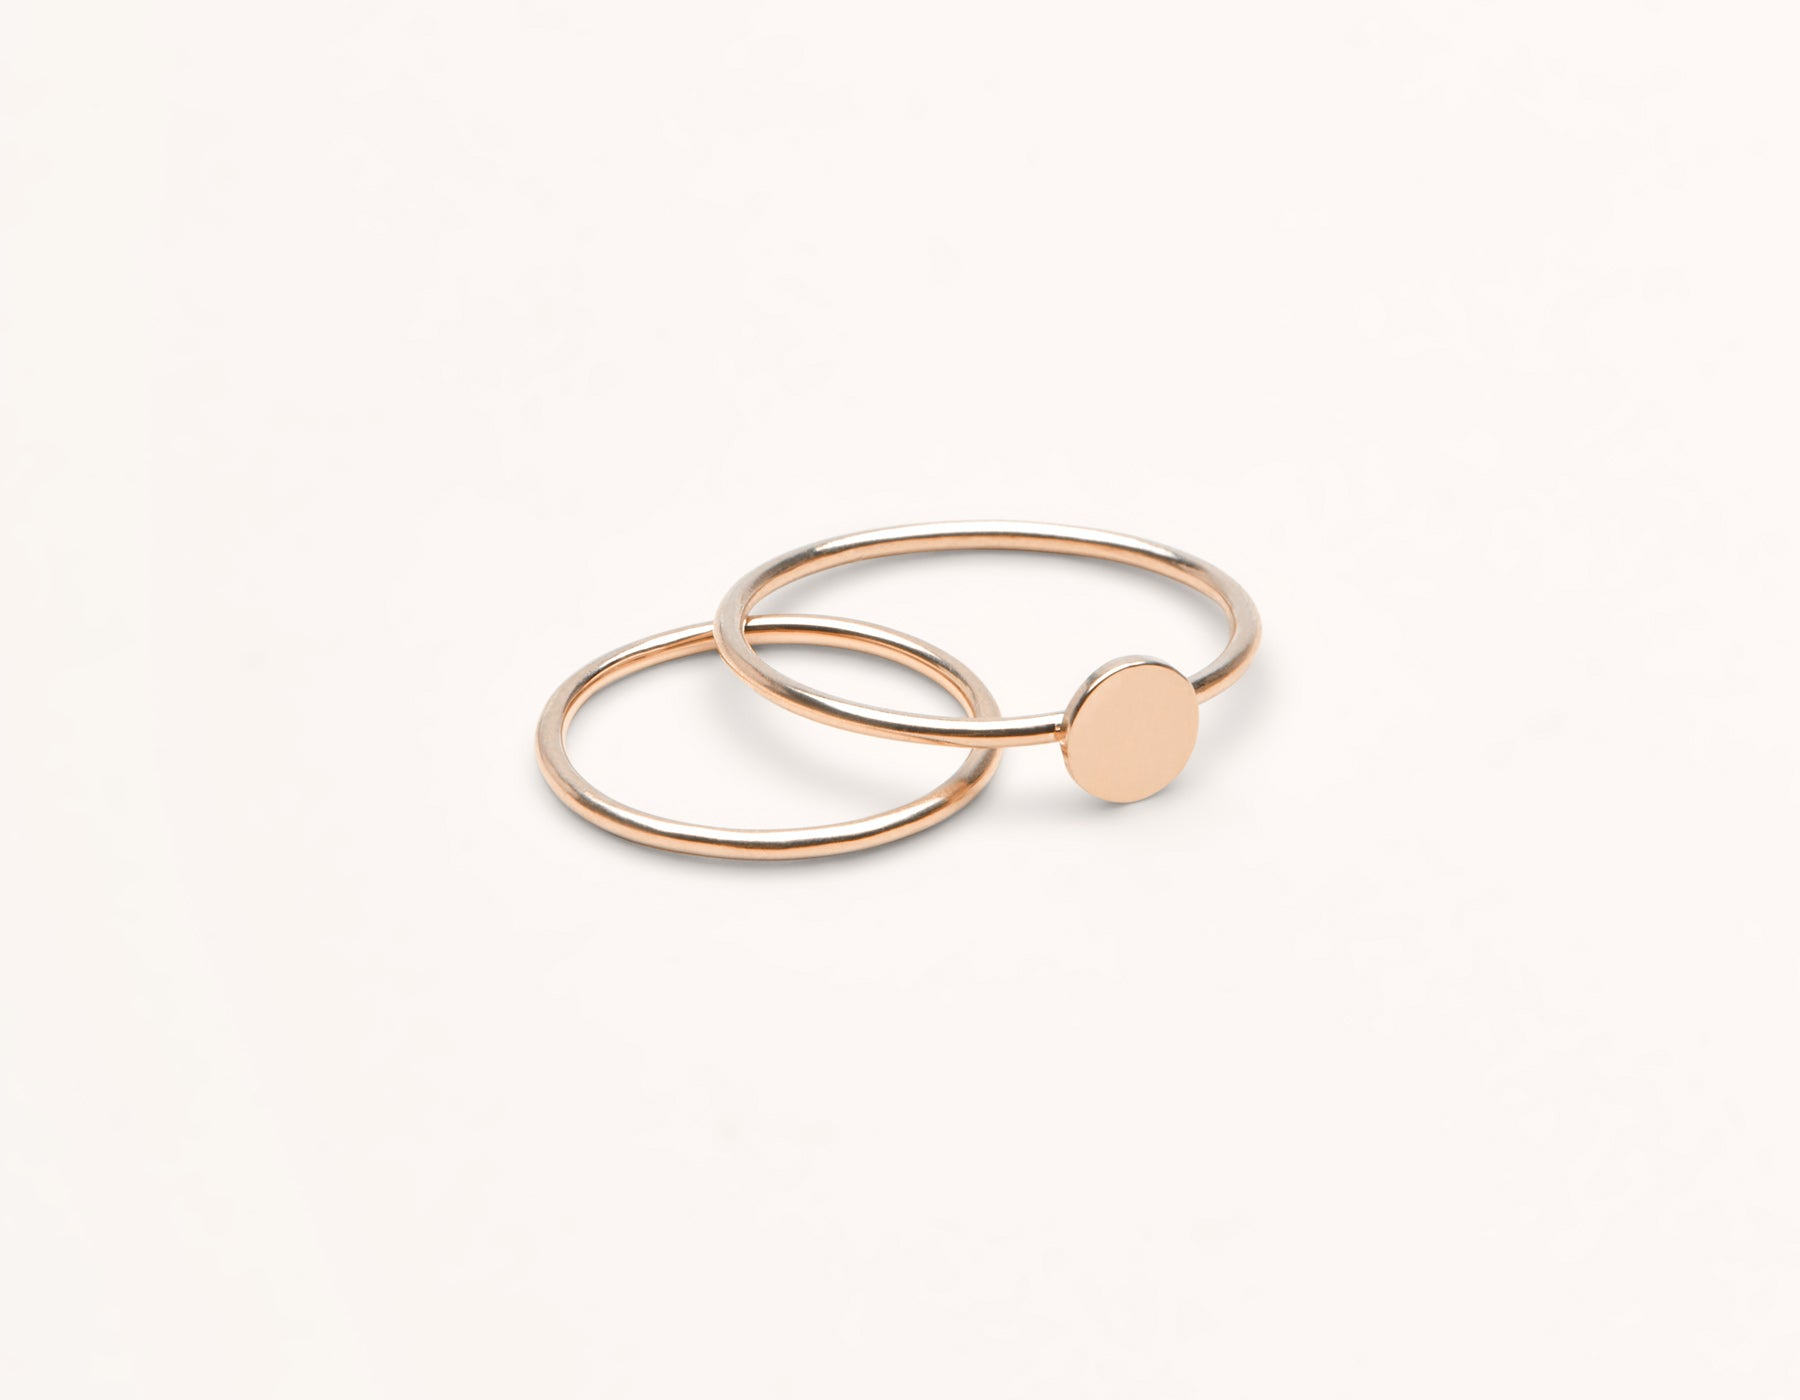 Personalized Initial Ring 14k solid gold simple disk simple skinny ring Vrai & Oro, 14K Rose Gold